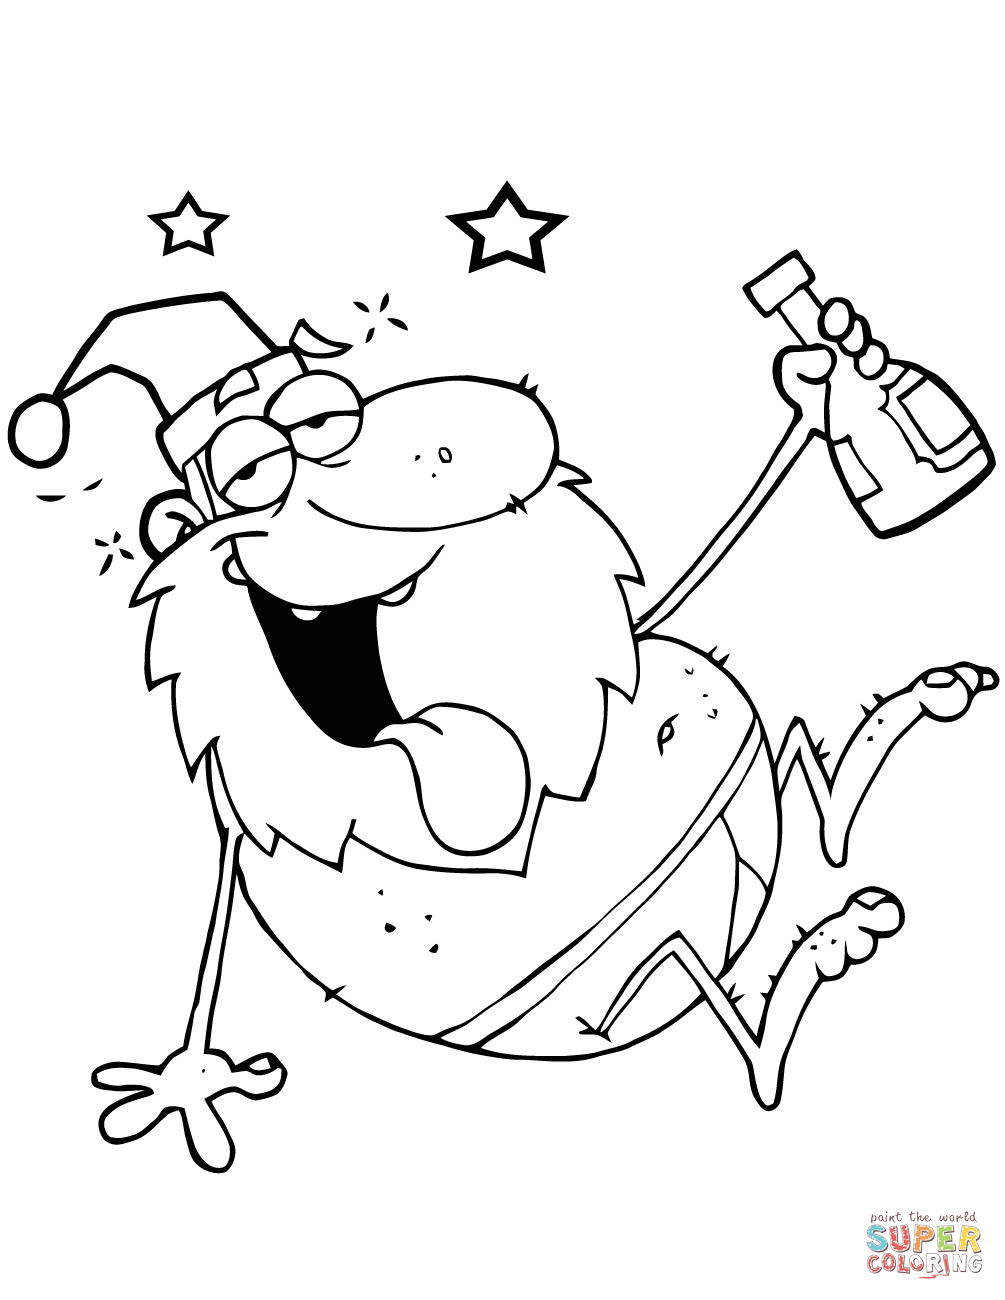 Santa Coloring Book Online With Drunk Claus Page Free Printable Pages